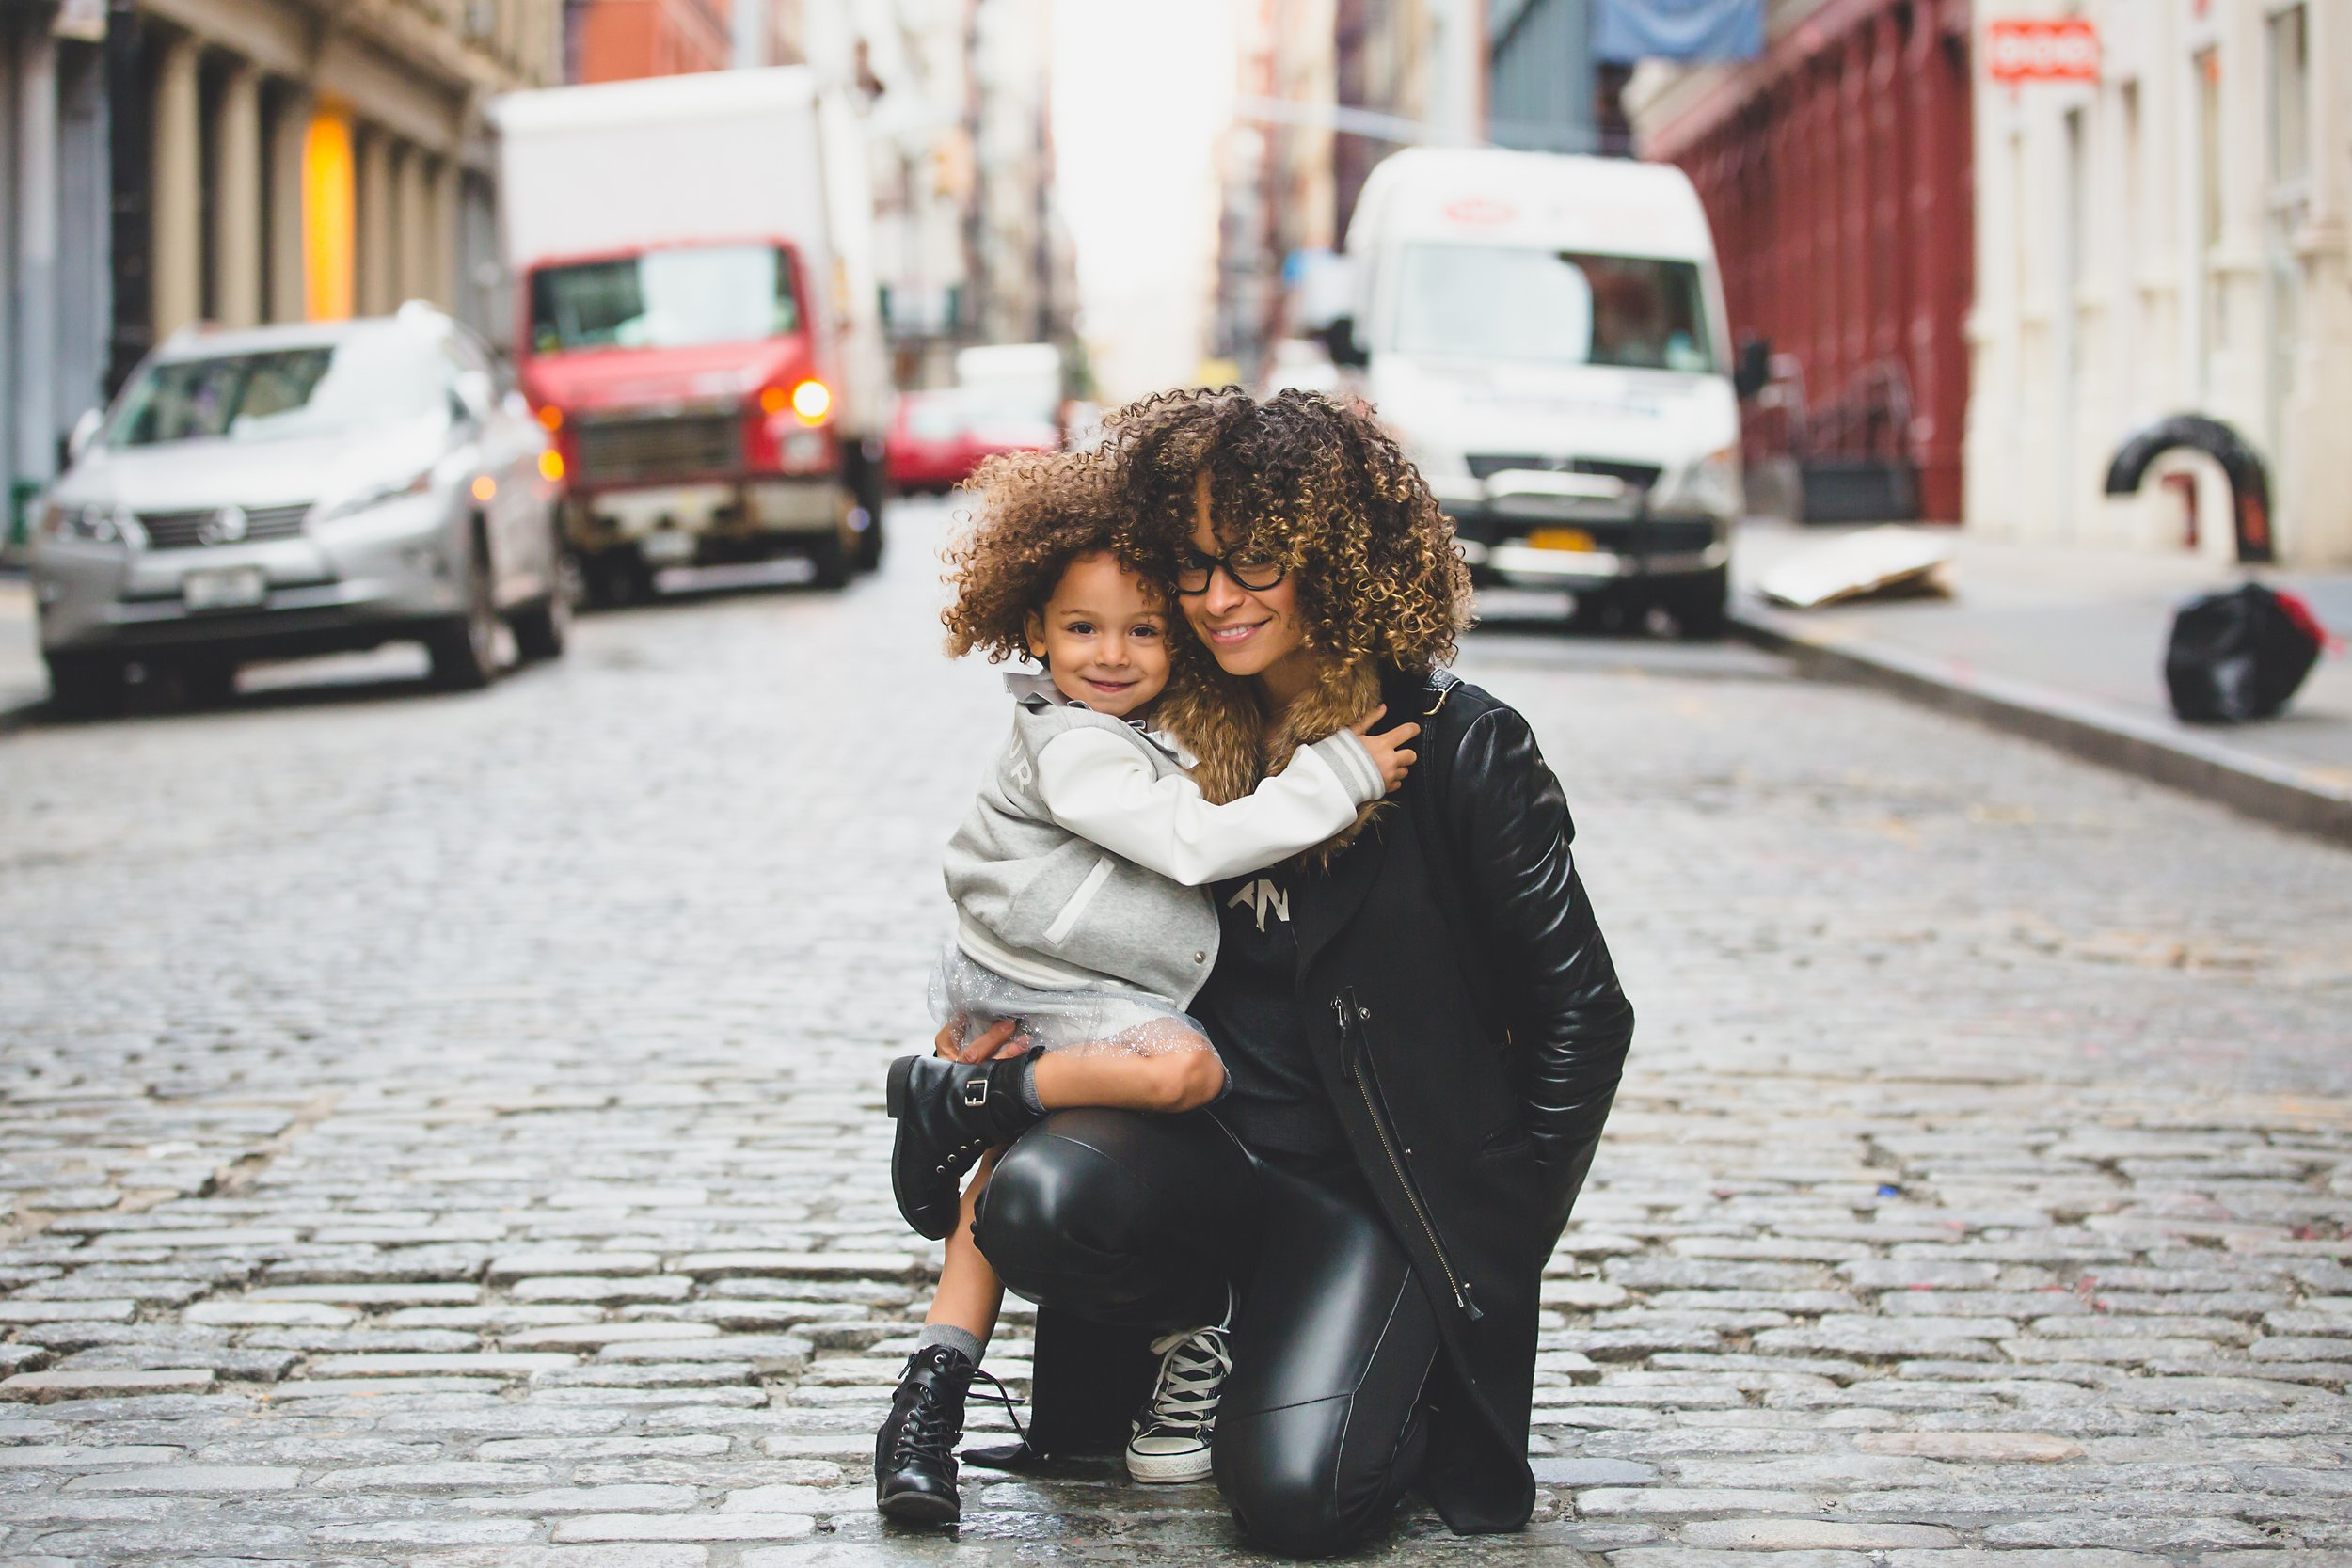 5 Best Cities for Mom Entrepreneurs - In the last 20 years, female entrepreneurs have risen as leaders of small business in the US. These featured cities were determined by data collected on such factors as the number of startups, the success of new startups, the percentage of female entrepreneurs in the workforce and costs of childcare for the working mother. These cities share greater numbers of female entrepreneurial success as well as better opportunities for entrepreneurs in general.